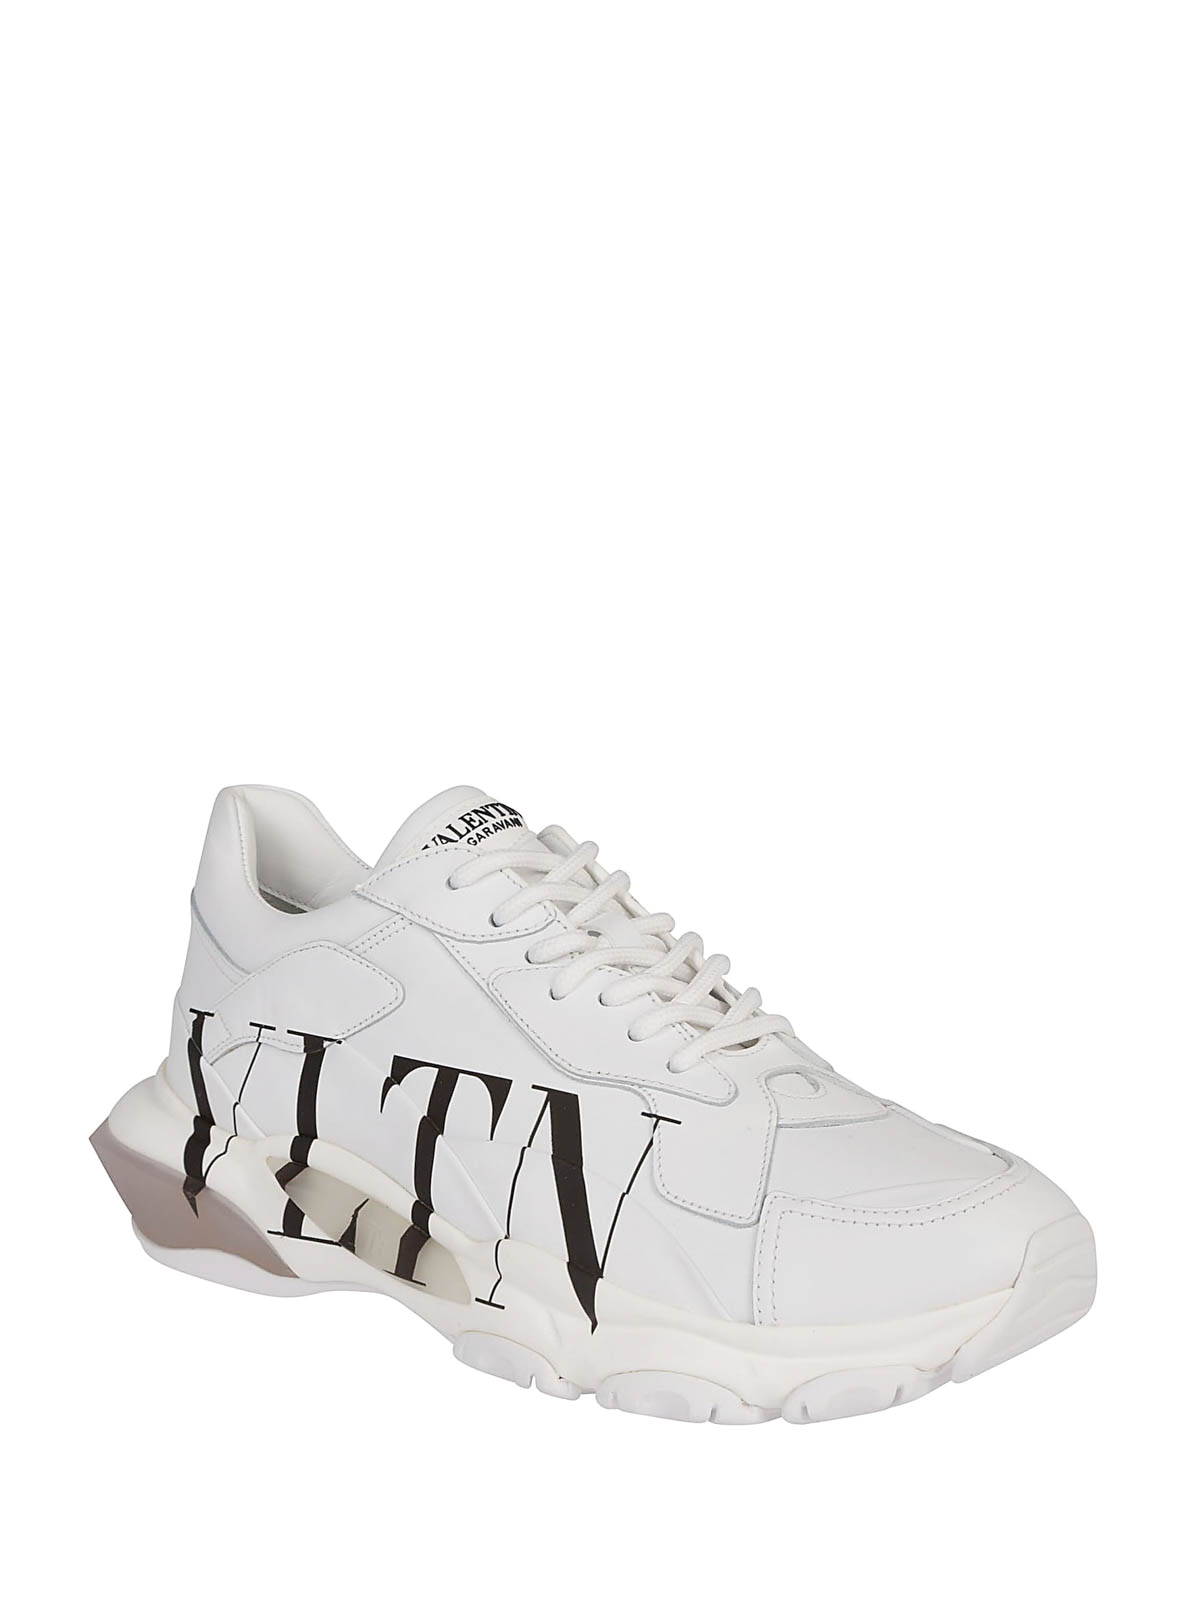 8f6a4350d VALENTINO GARAVANI  trainers online - Bounce low top leather sneakers